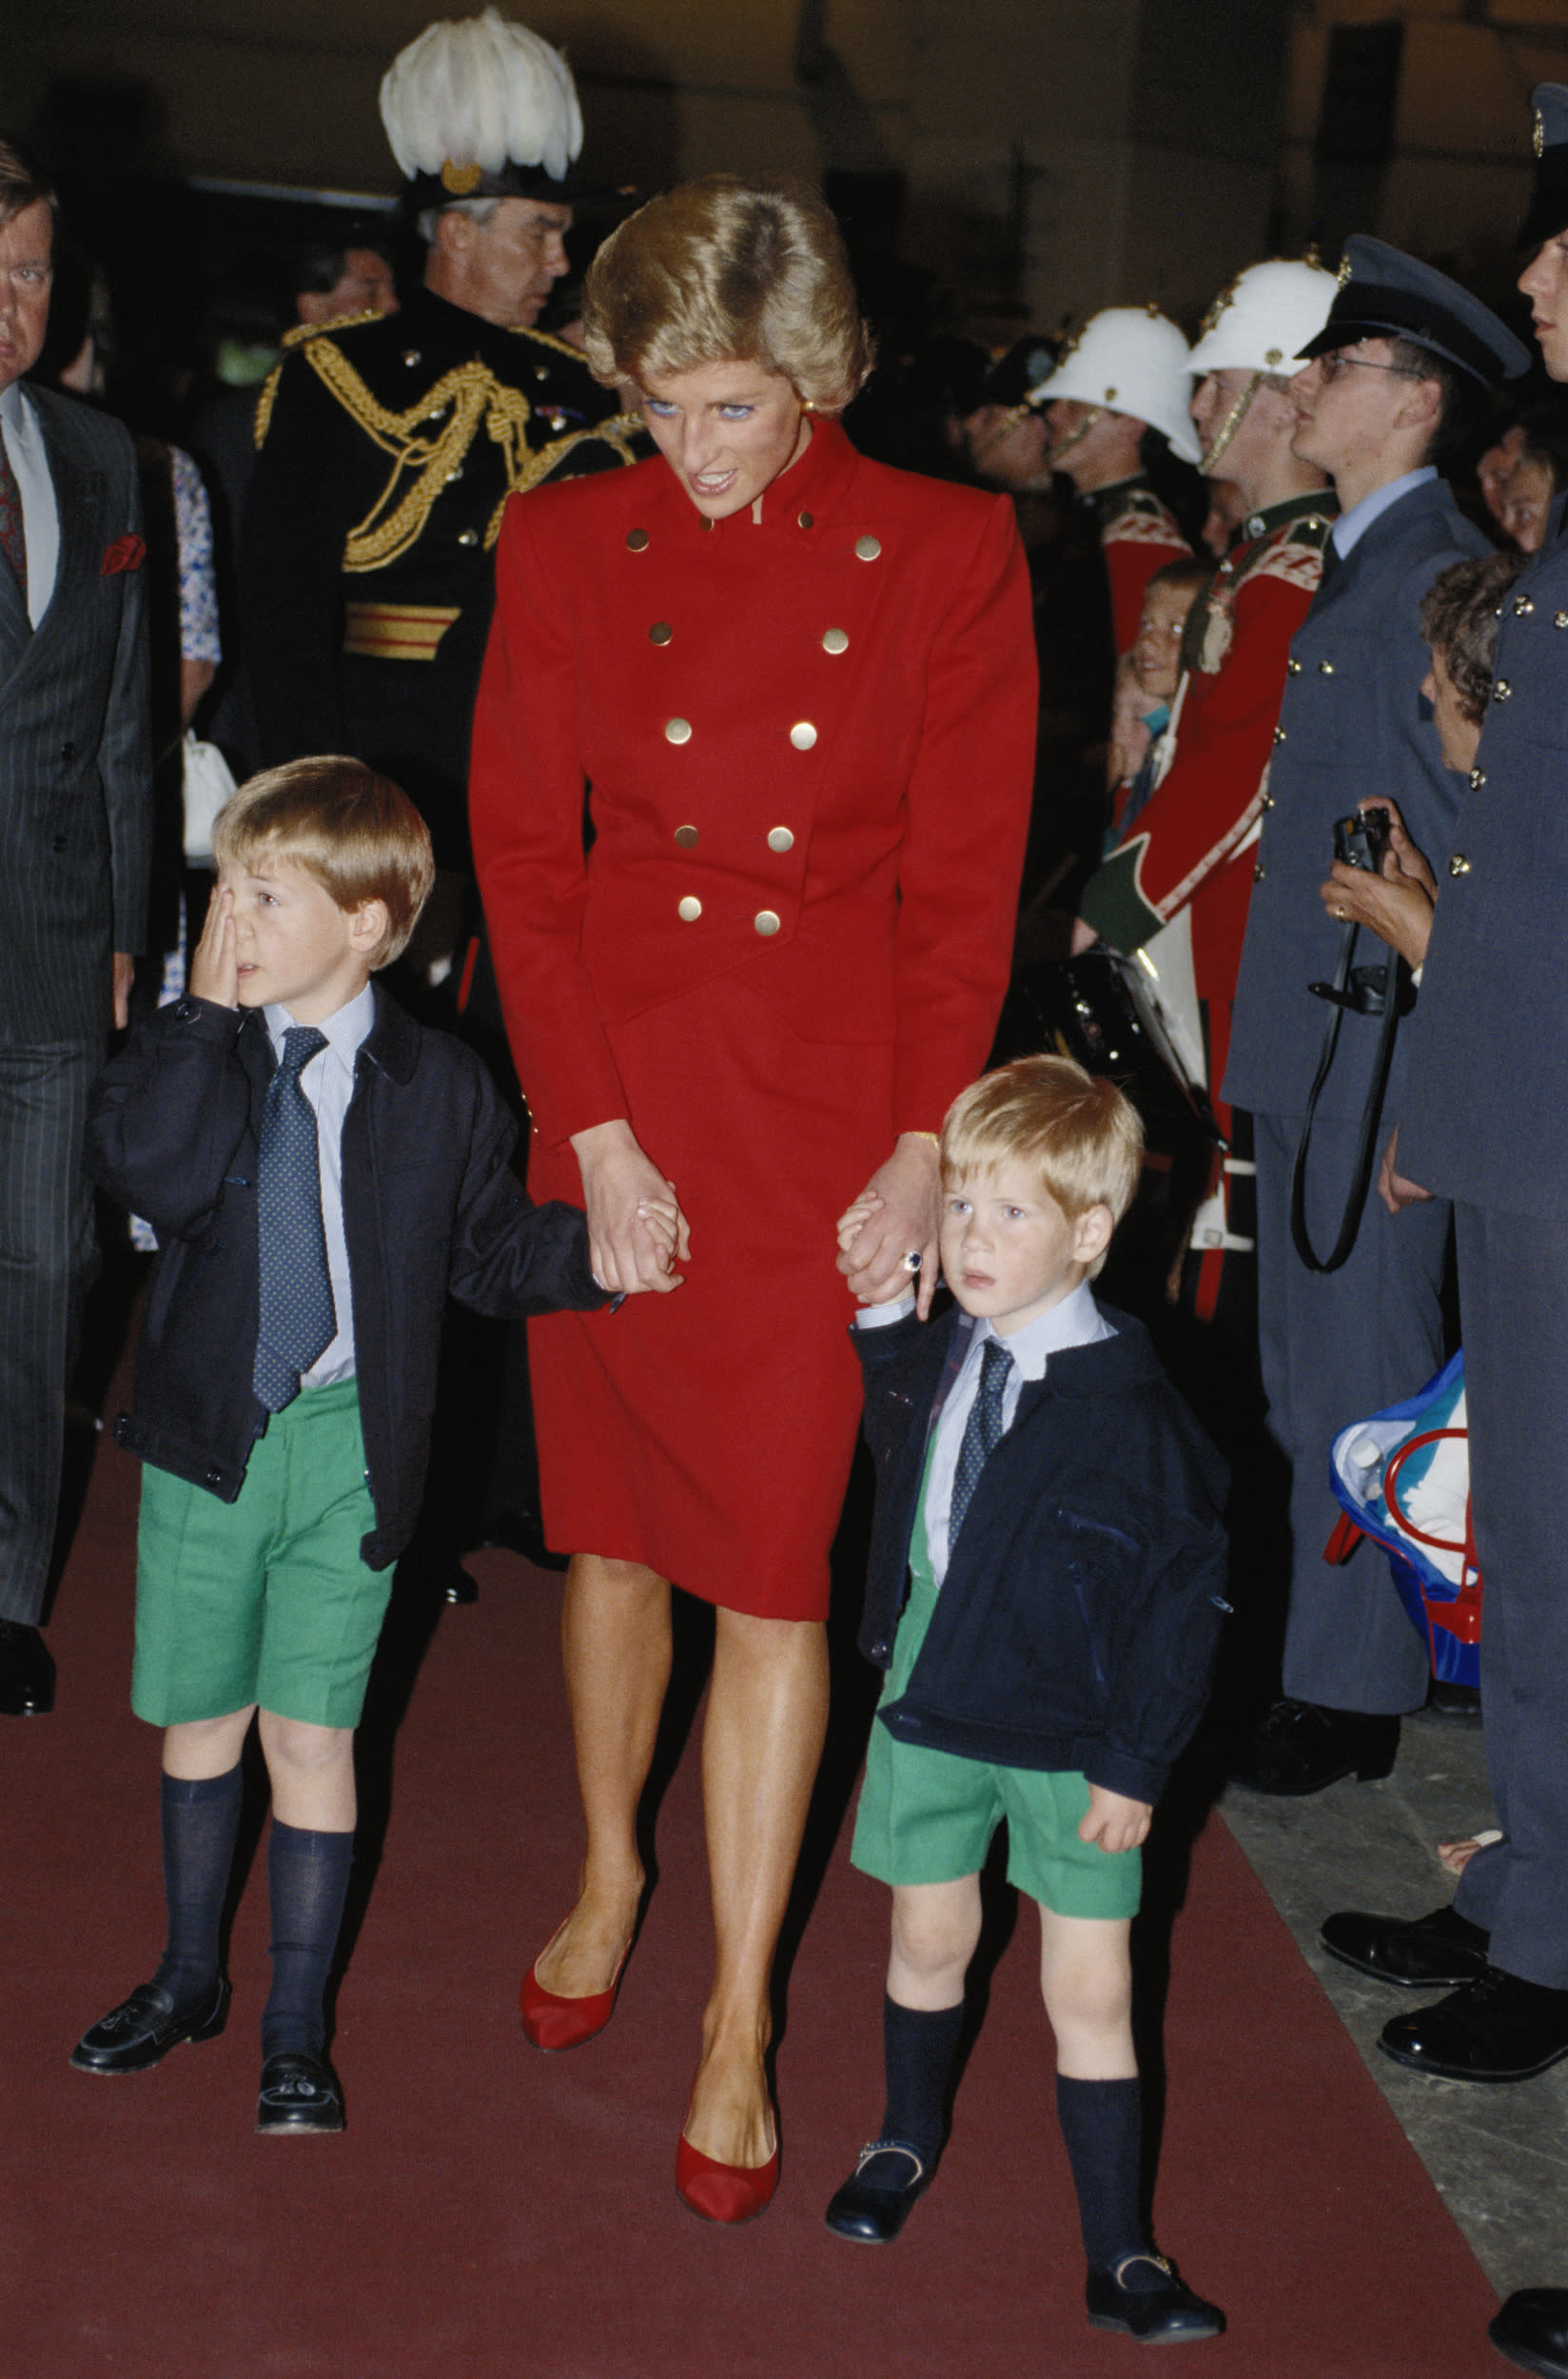 Diana, Princess of Wales (1961-1997), with her sons, Prince William and Prince Harry, at the Royal Tournament, Earls Court, London, England, Great Britain, 28 July 1988. (Photo by Tim Graham/Getty Images)